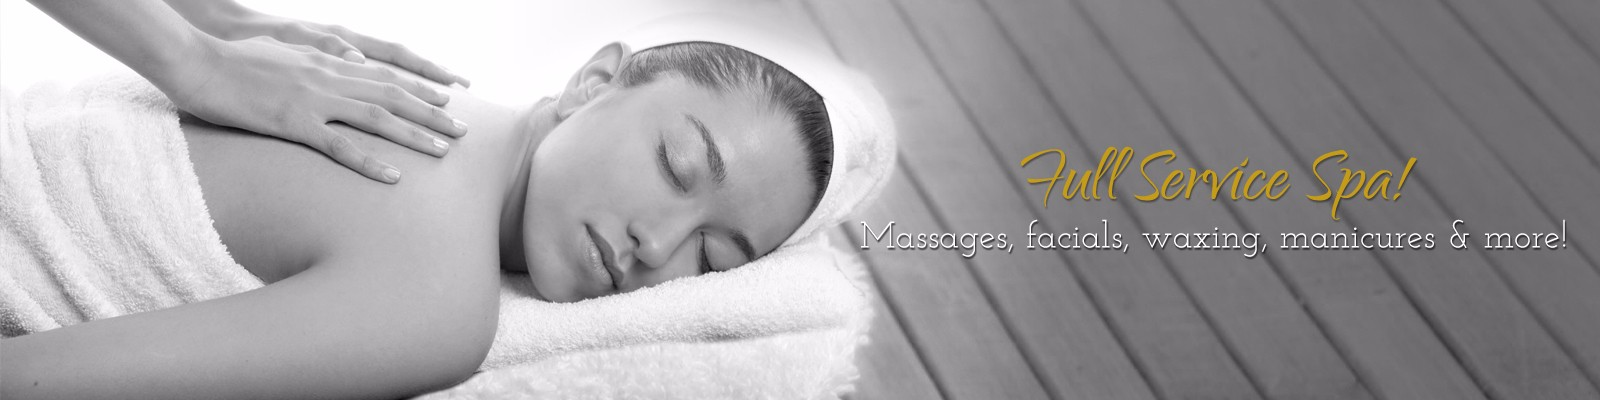 full service spa: massages, facials, waxing and manicures